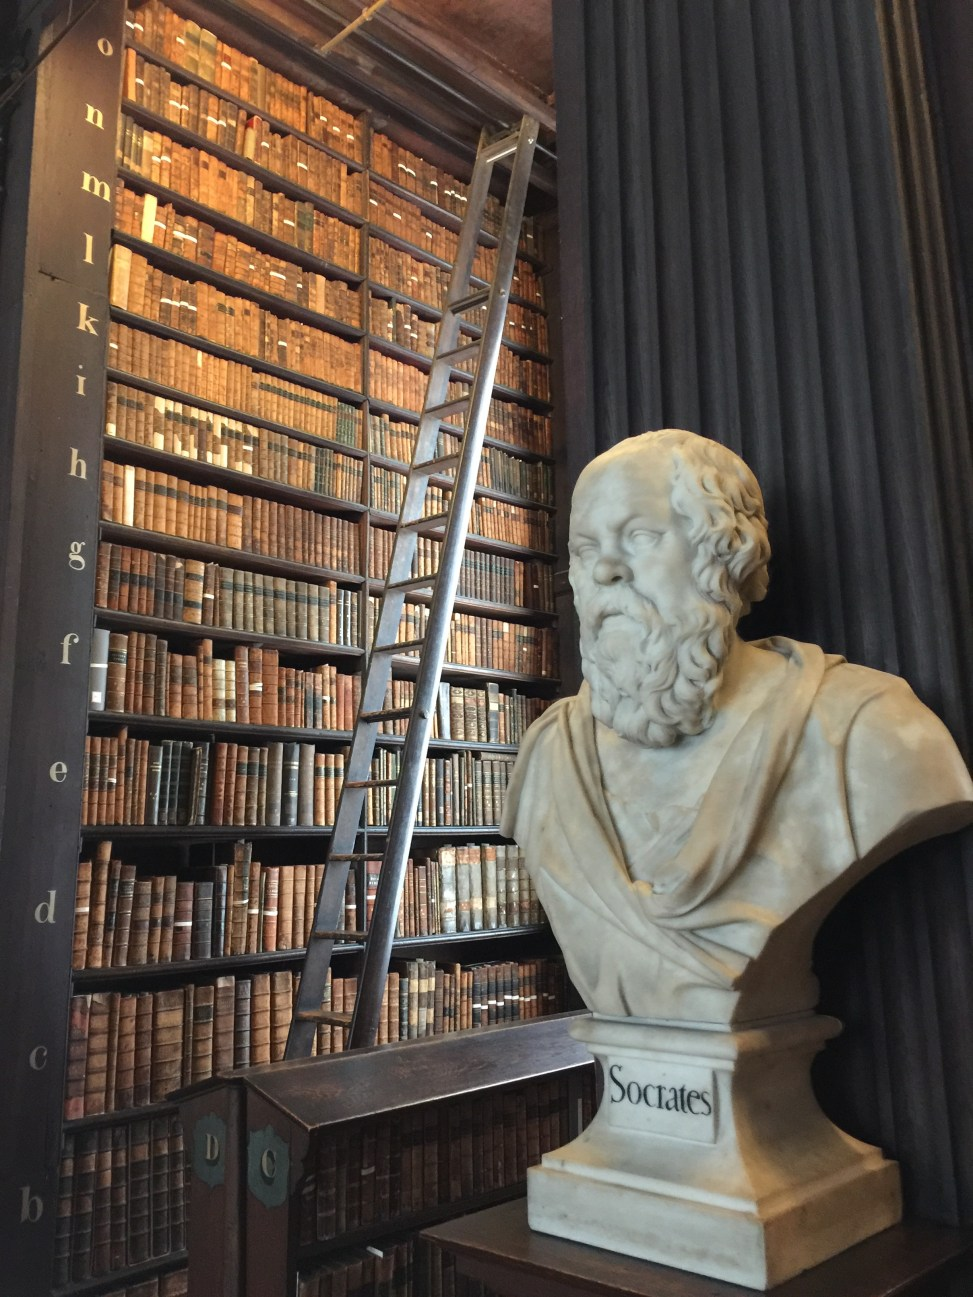 Bust of Socrates in the Trinity College Library in Dublin, Ireland.